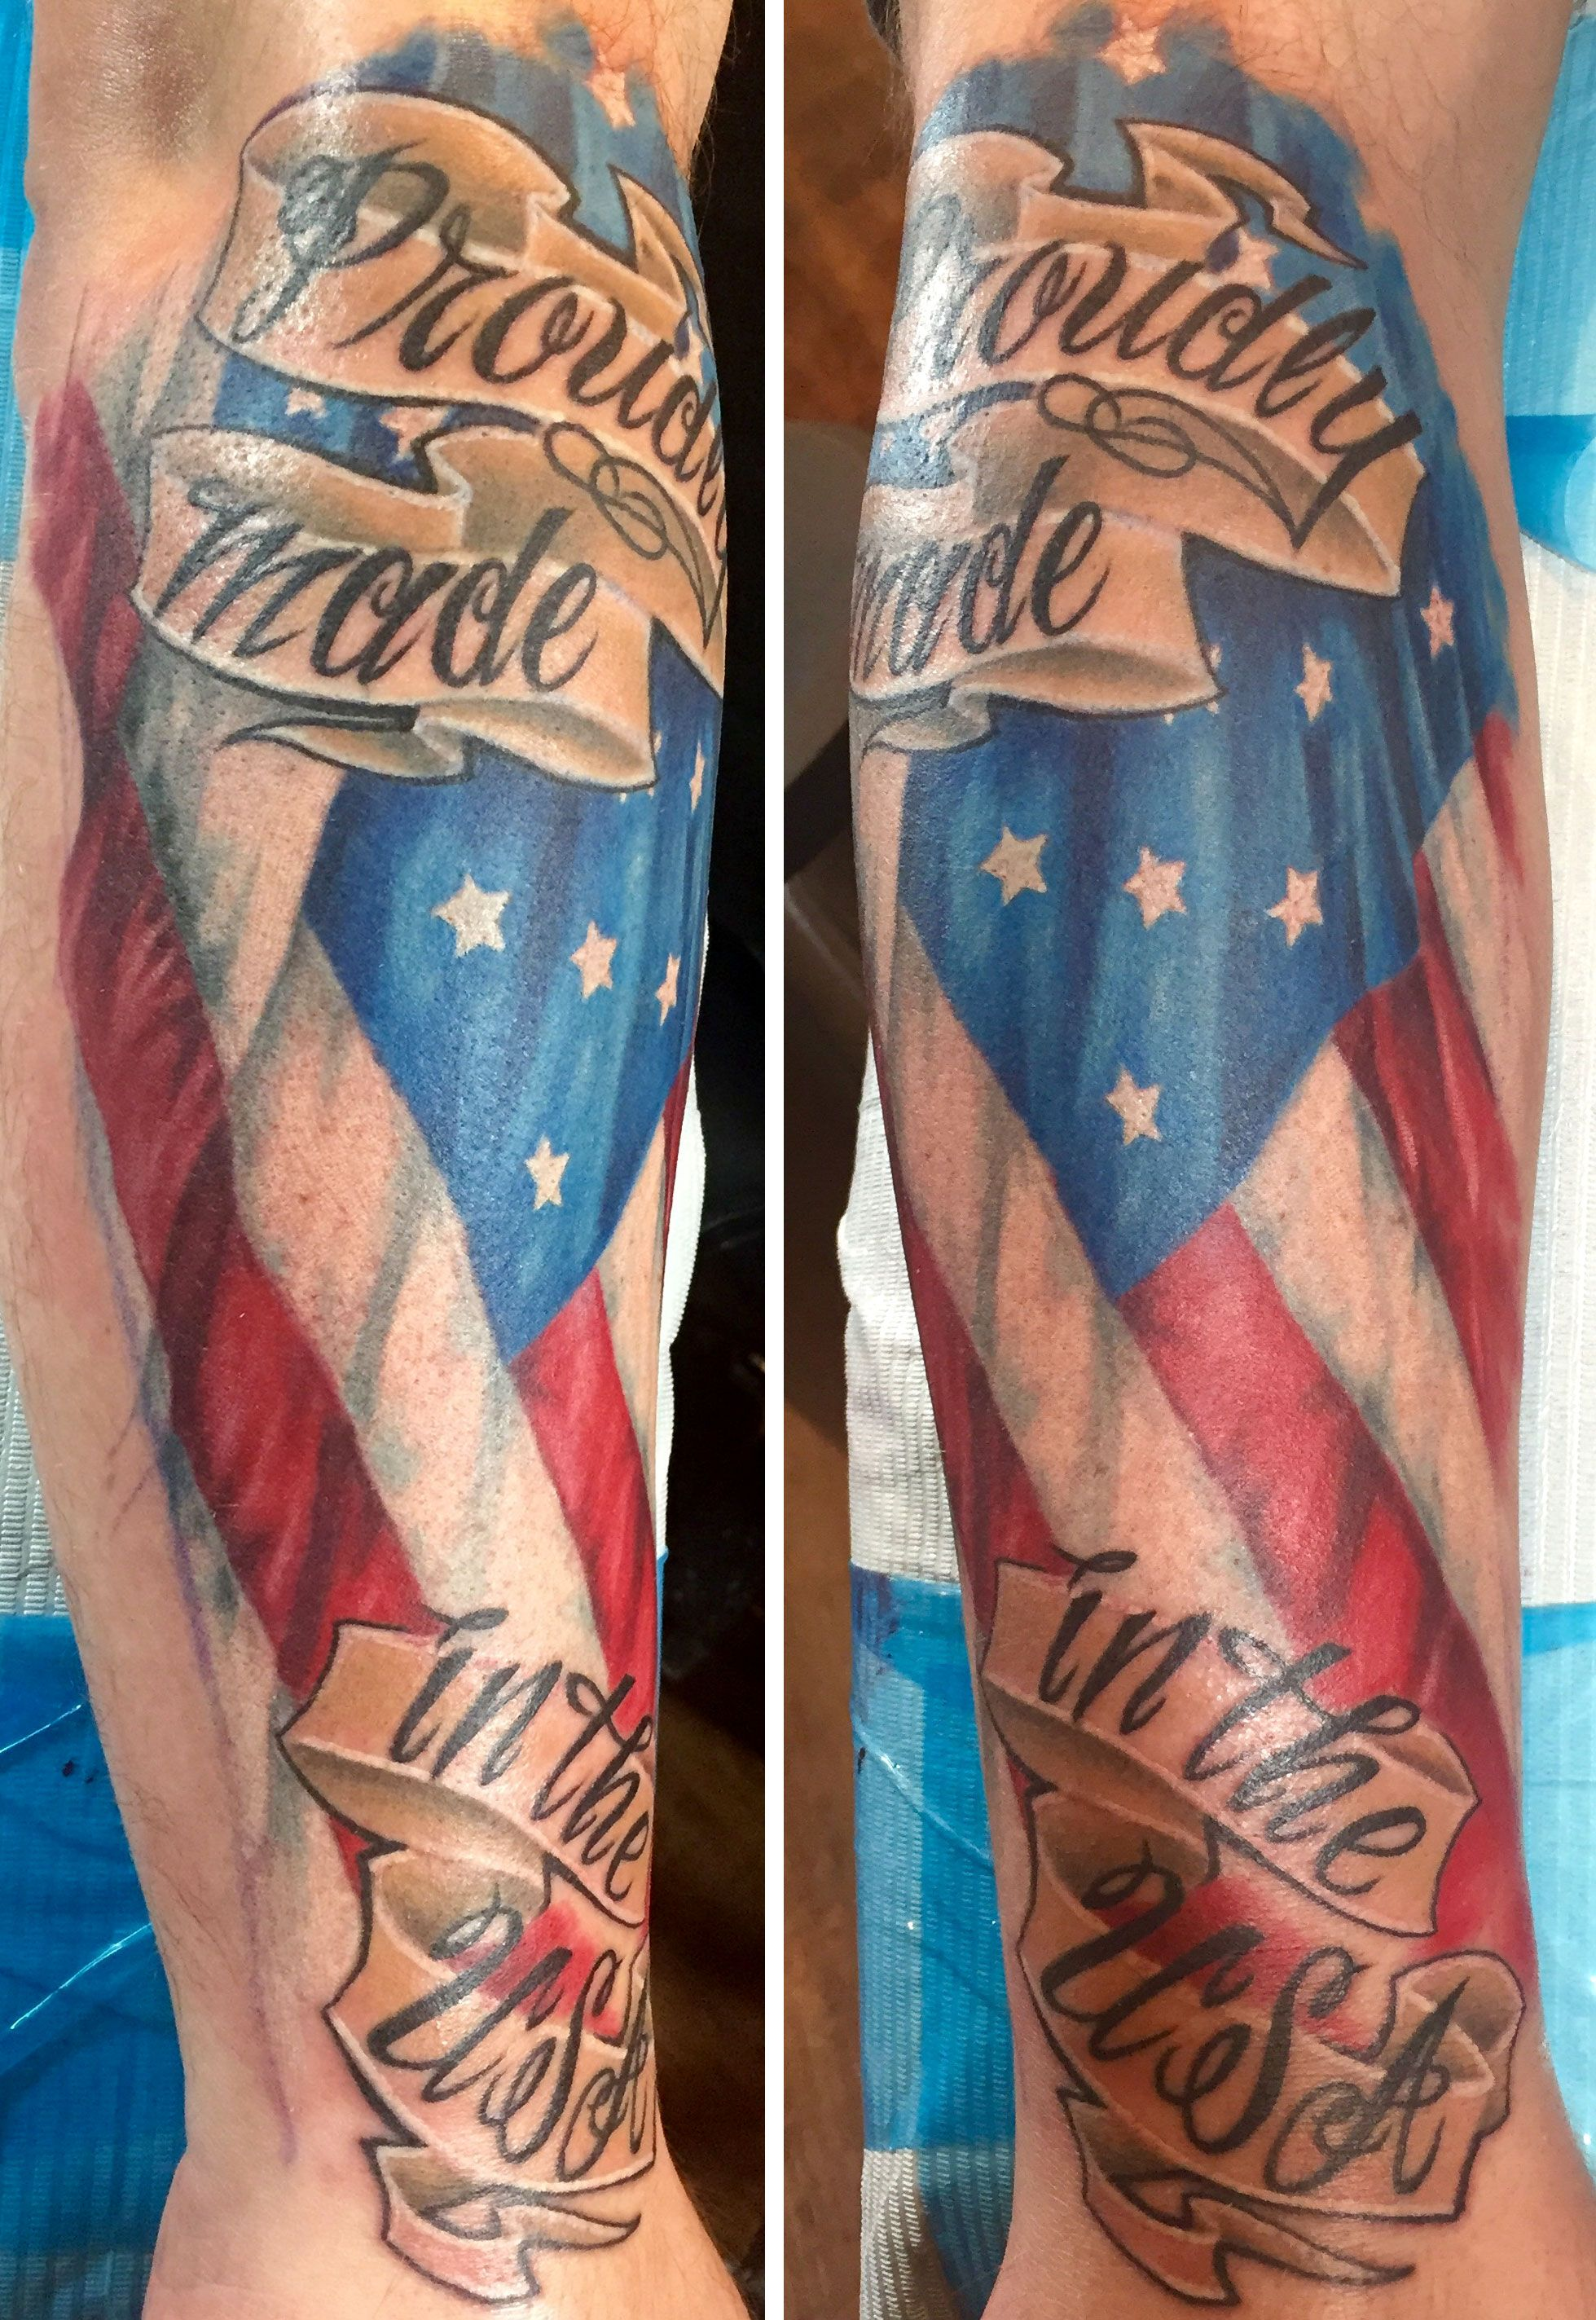 Proudly Made In The Usa American Flag Tattoo Done By John Kautz